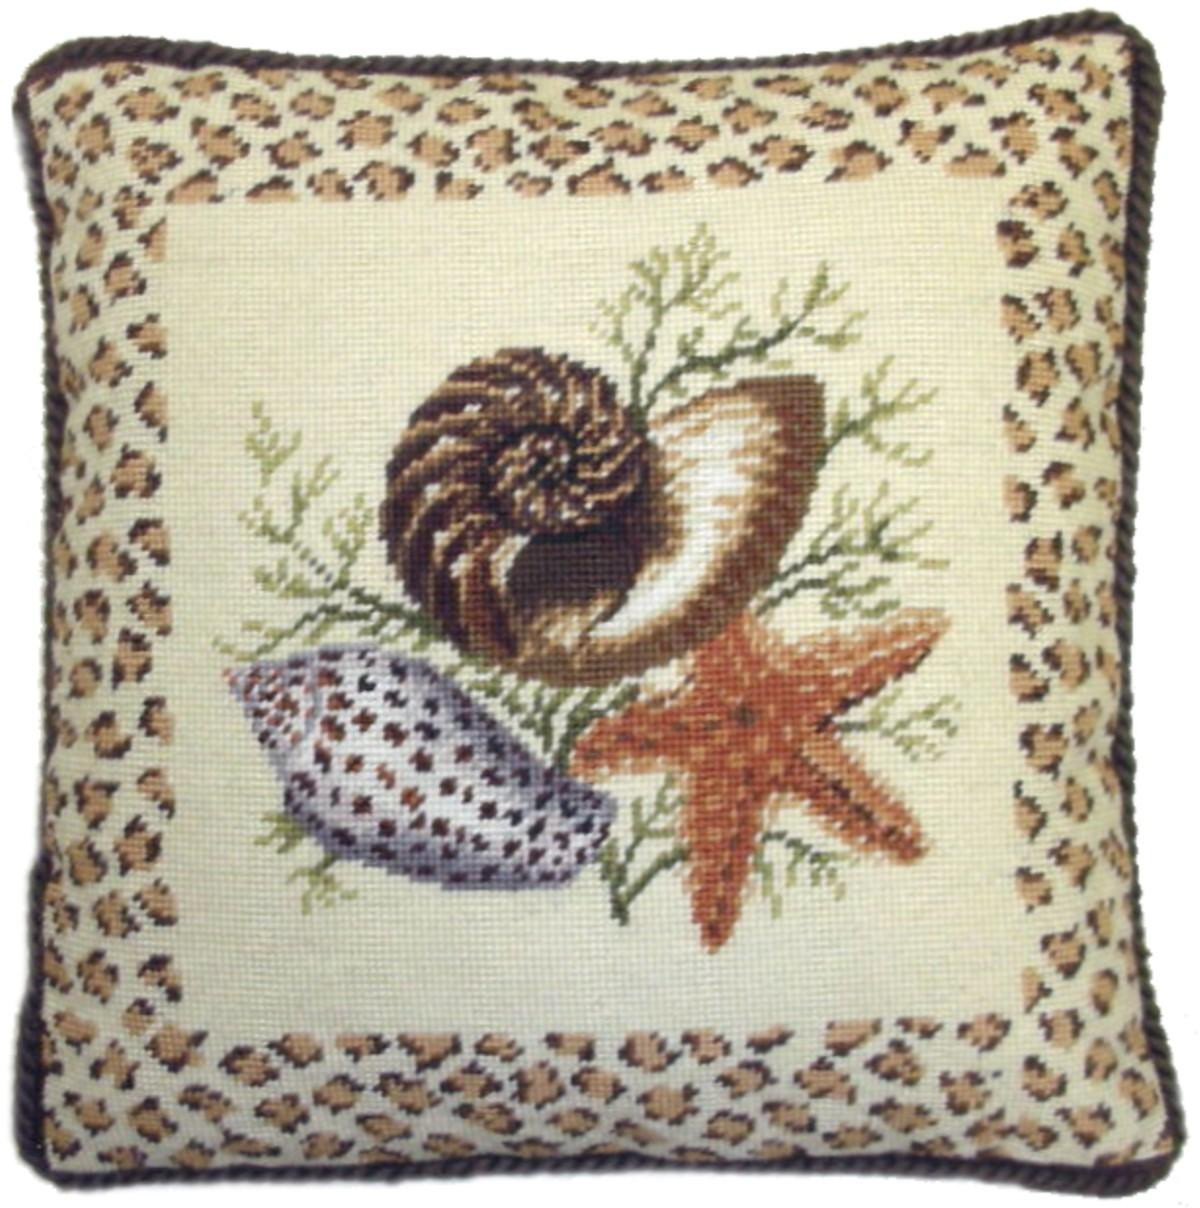 Animal Print Needlepoint Pillows : Seashells Needlepoint Pillow with Animal Print Border II A&L HOME